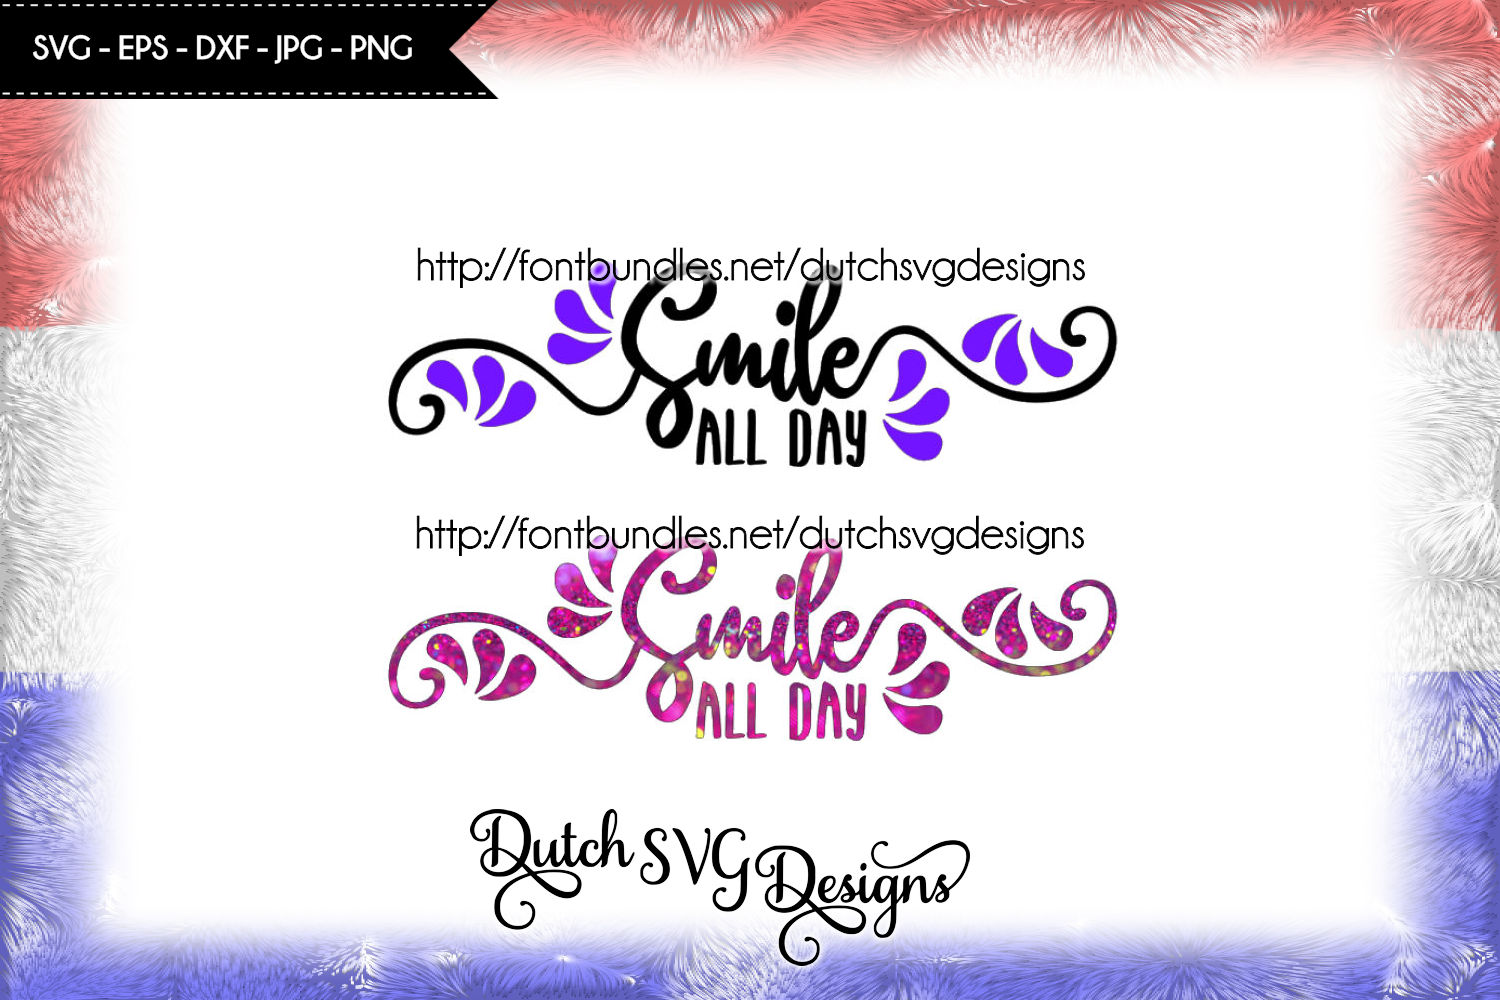 Text cutting file Smile, in Jpg Png SVG EPS DXF, for Cricut & Silhouette, smile svg, smile cut file, cricut svg, silhouette cut file, diy example image 2